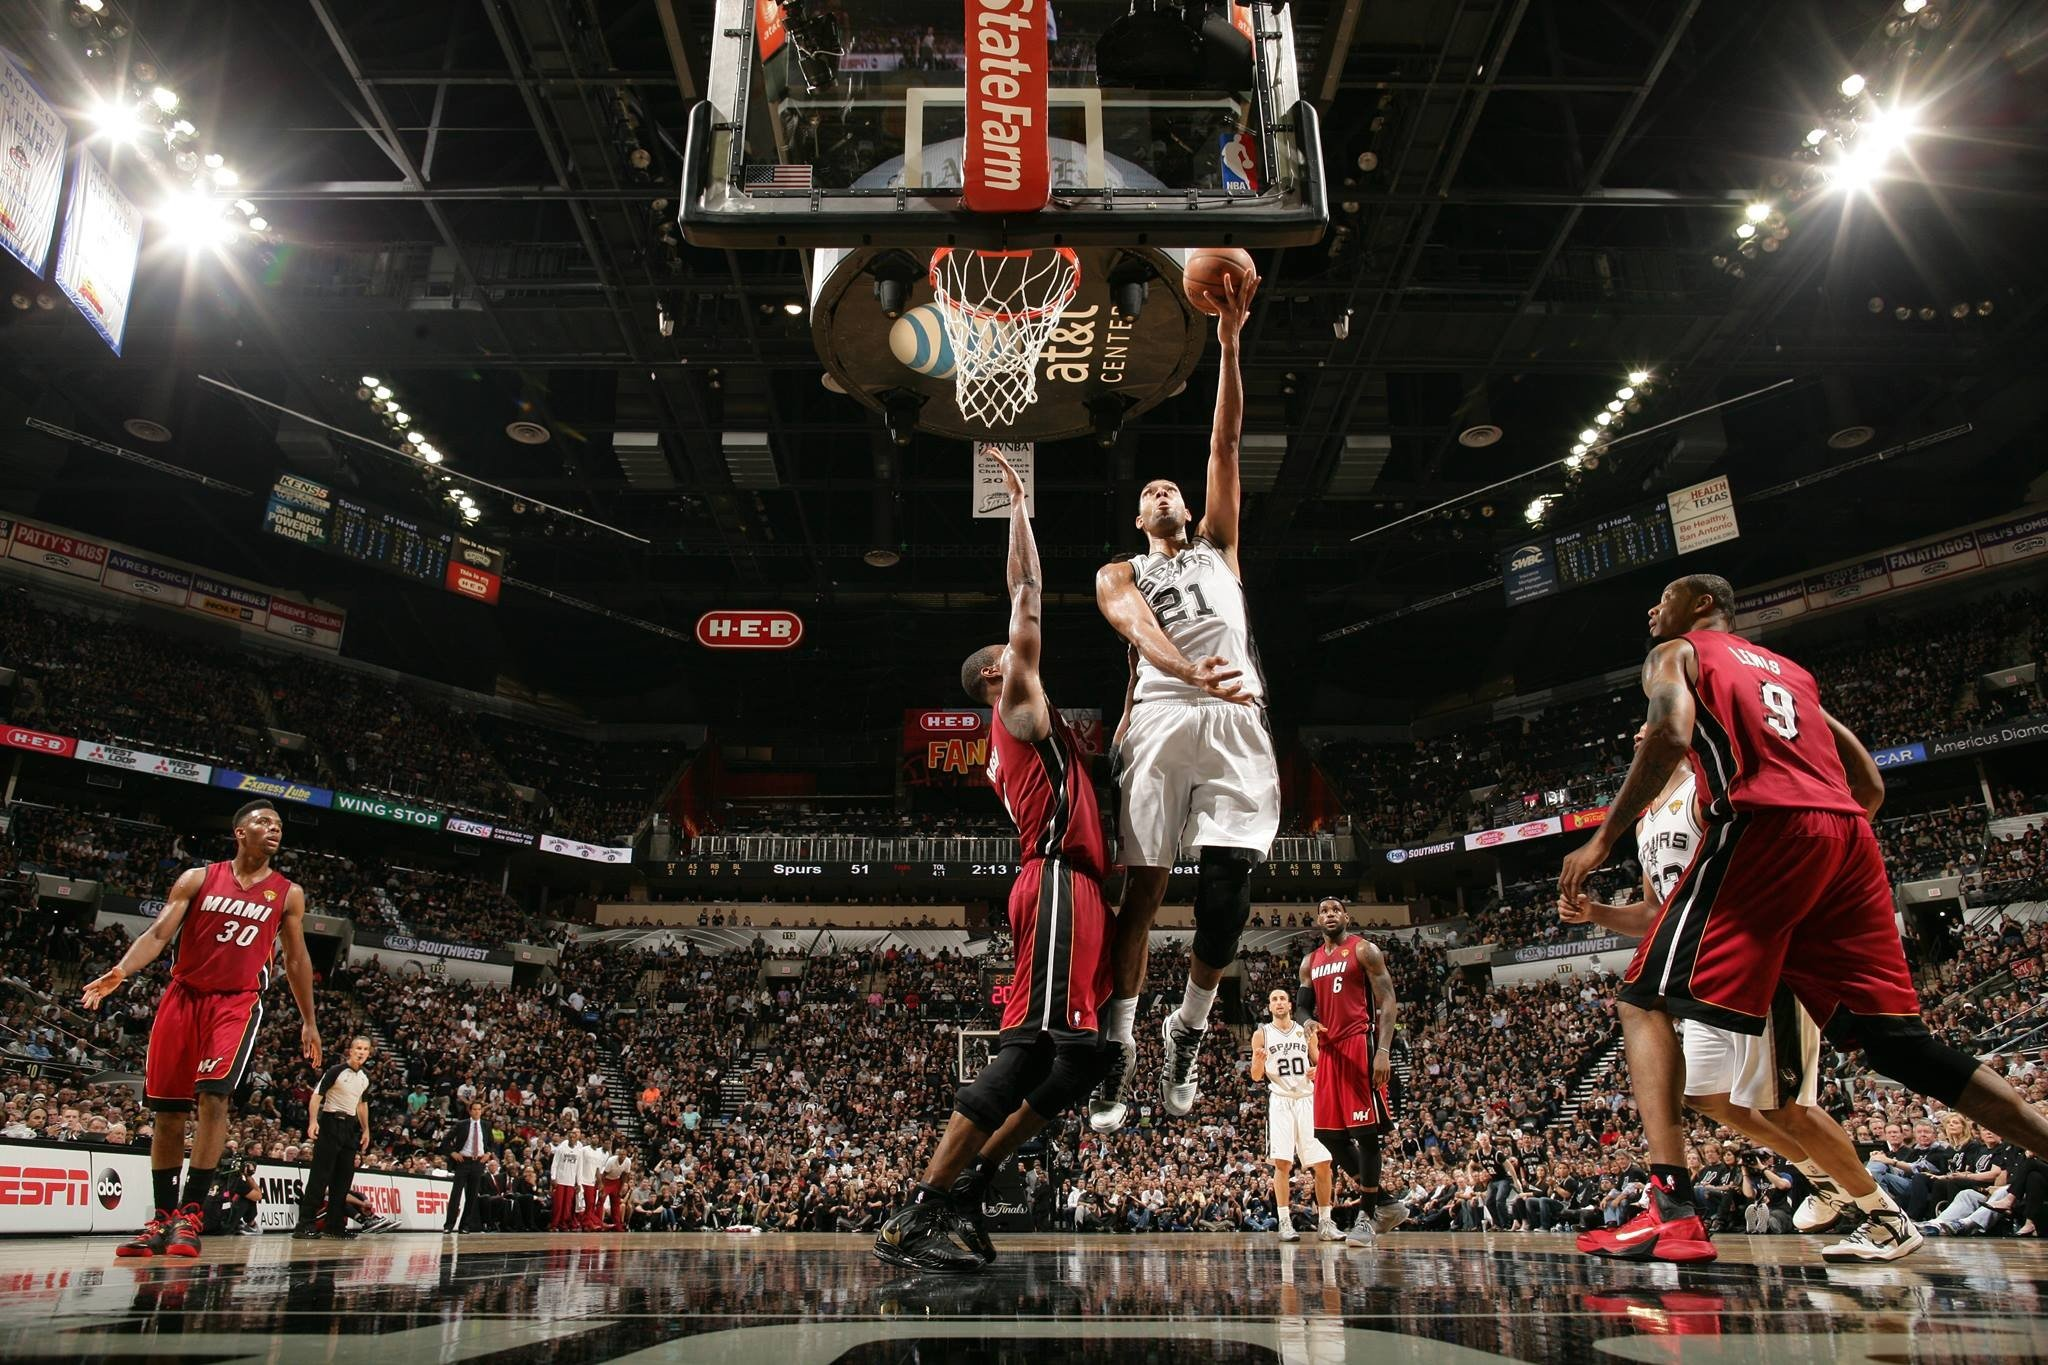 Nba Tim Duncan Miami Heat San Antonio Spurs Hd